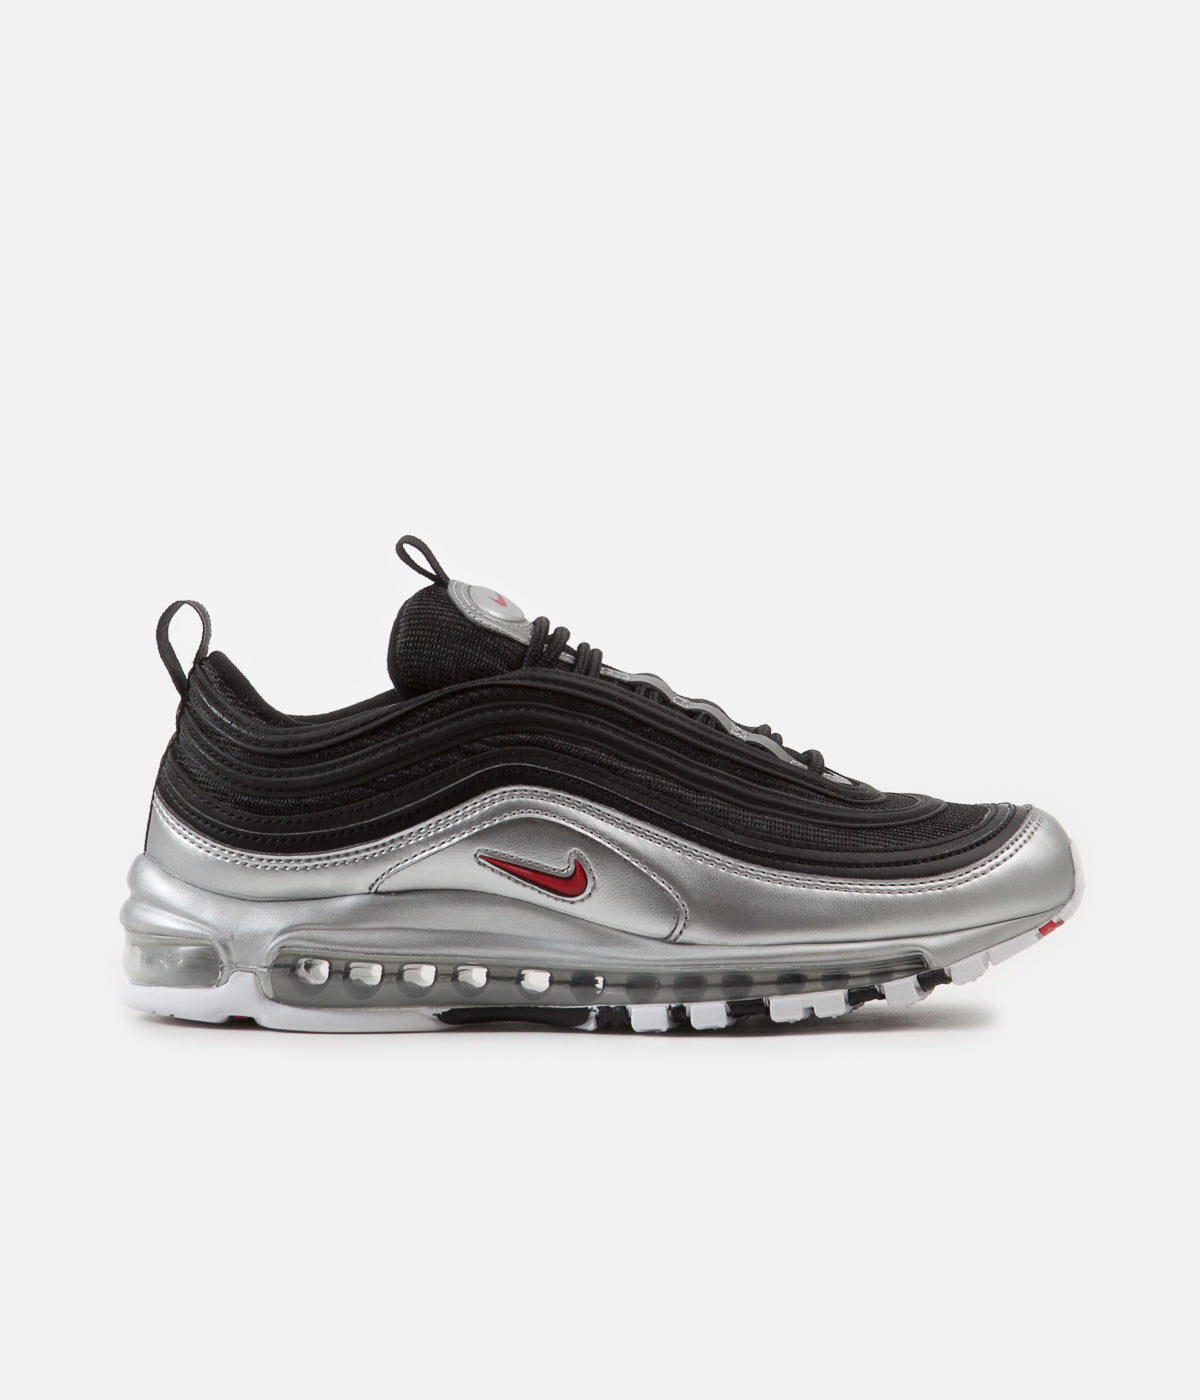 new style 5486a 75ebc ... Nike Air Max 97 QS Shoes - Black   Varsity Red - Metallic Silver - White  ...